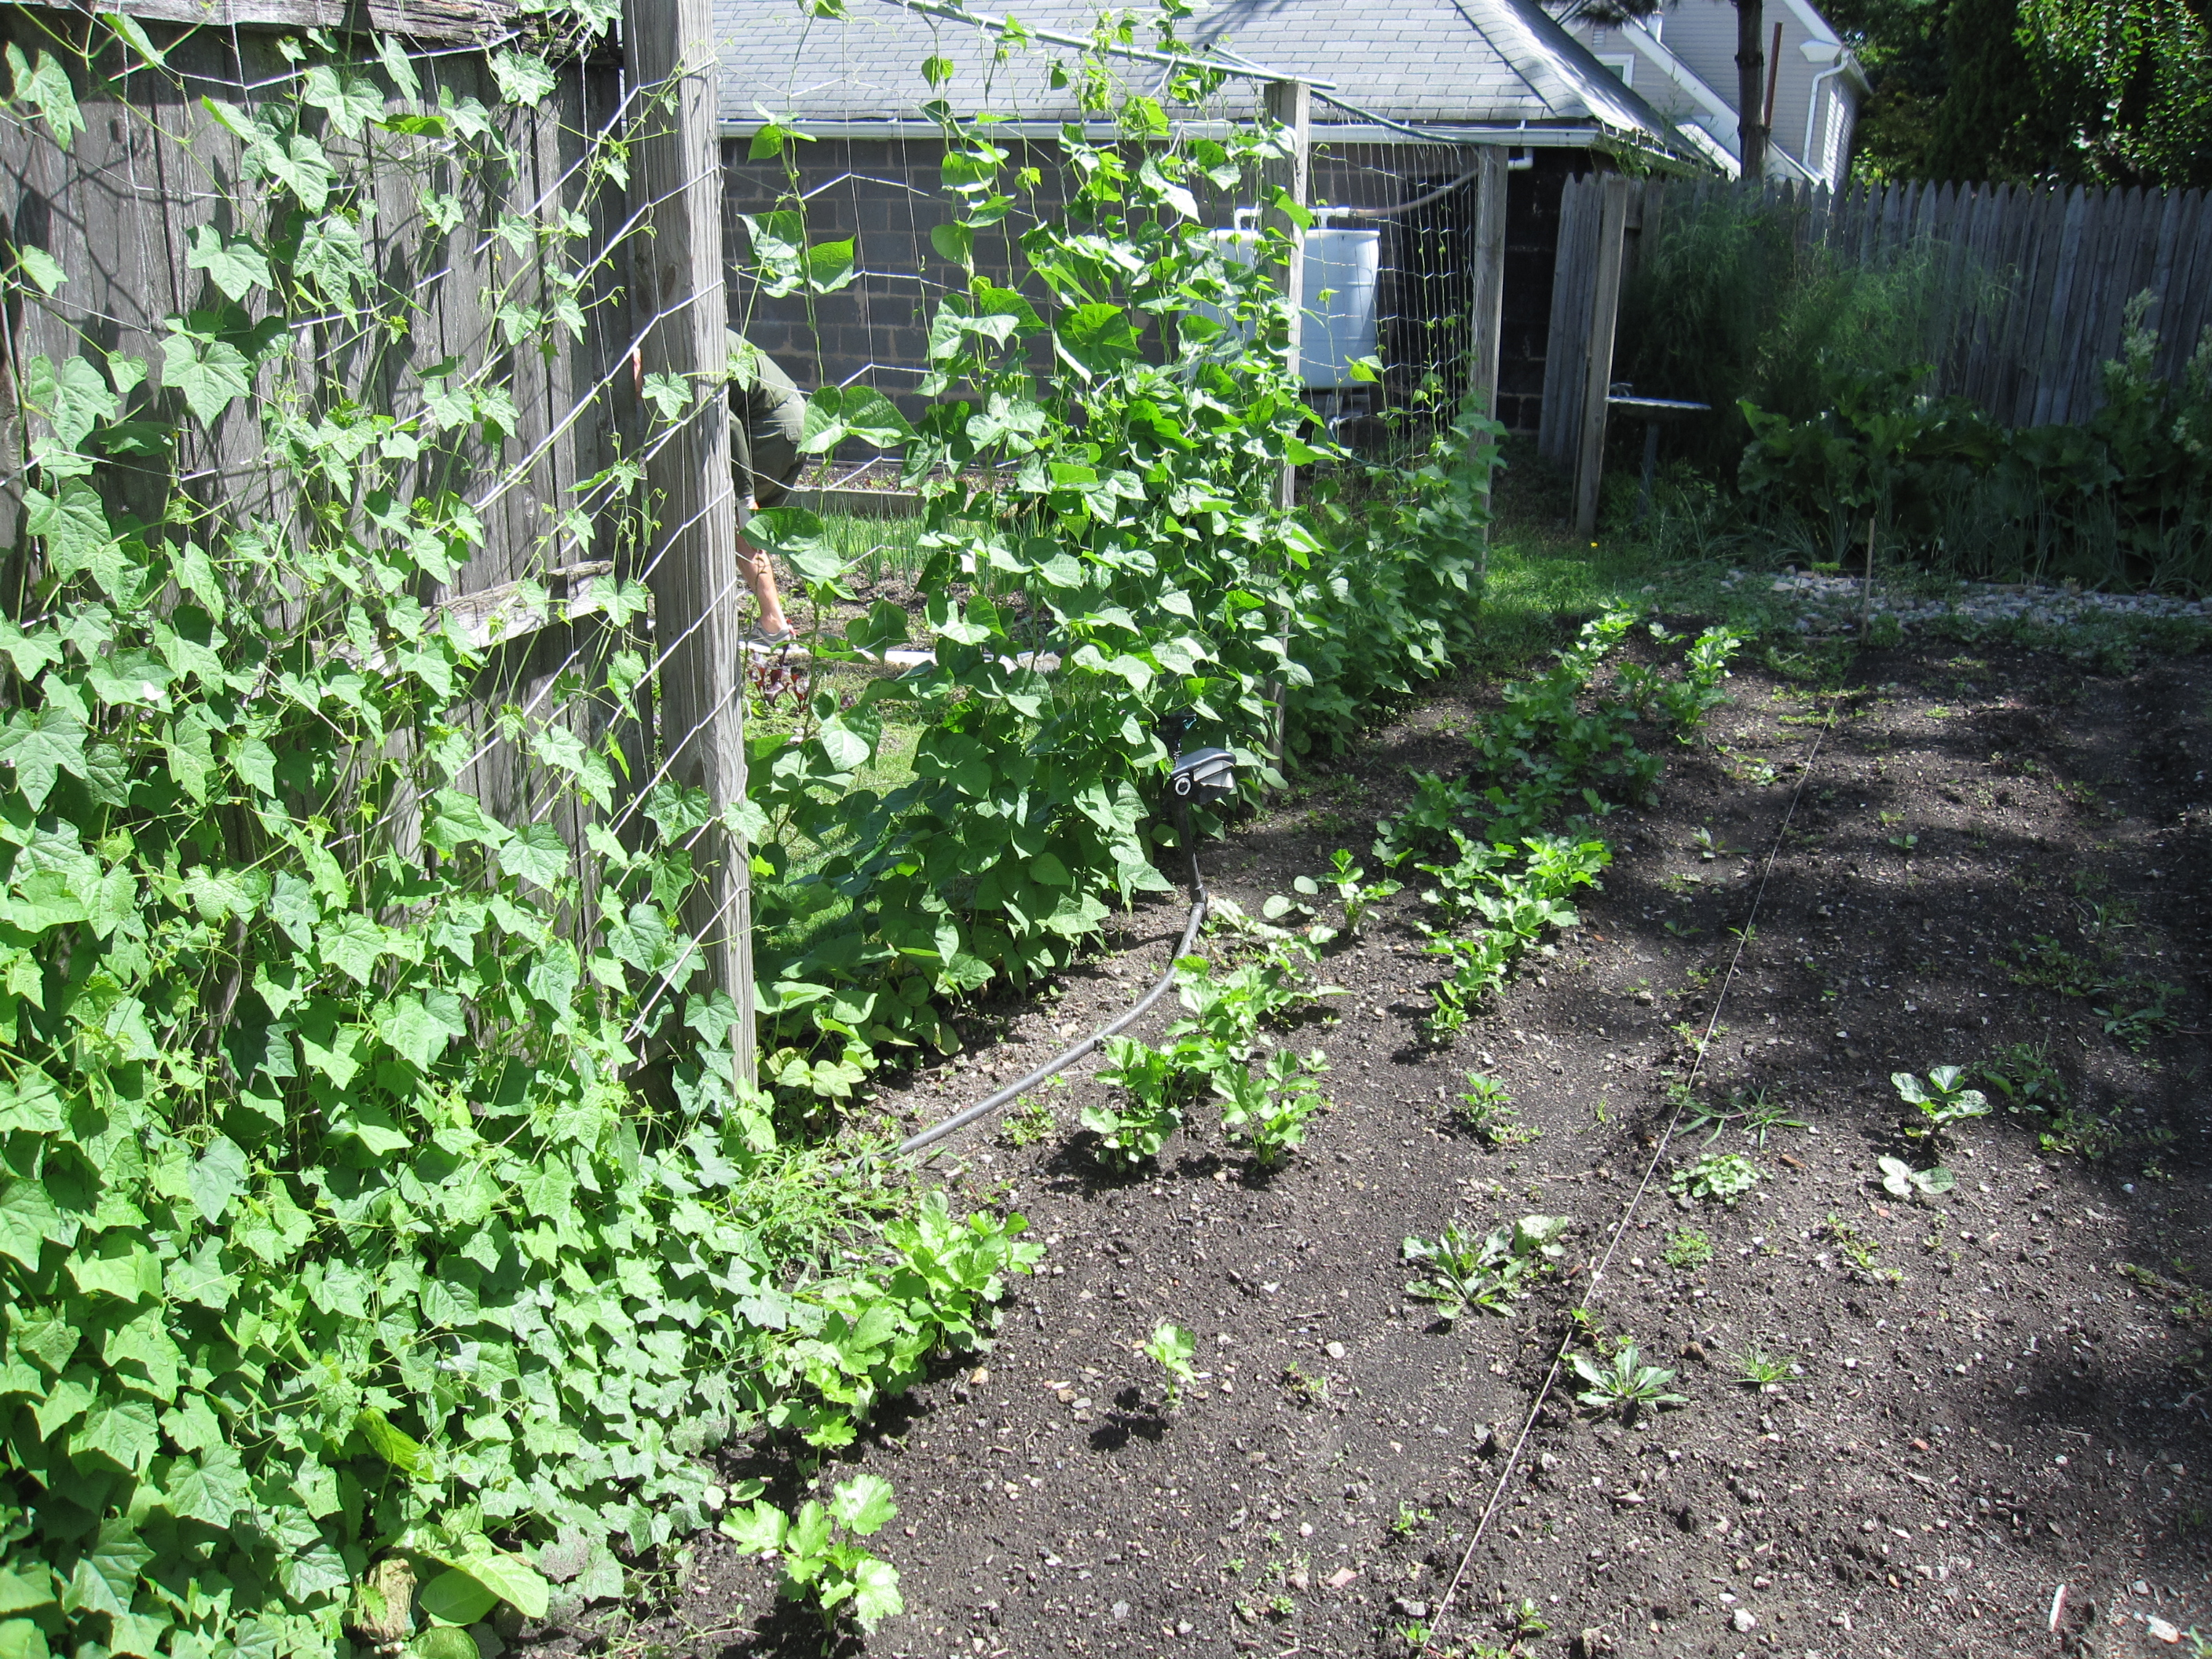 More Mexican sour gerkins (on left) and pole beans